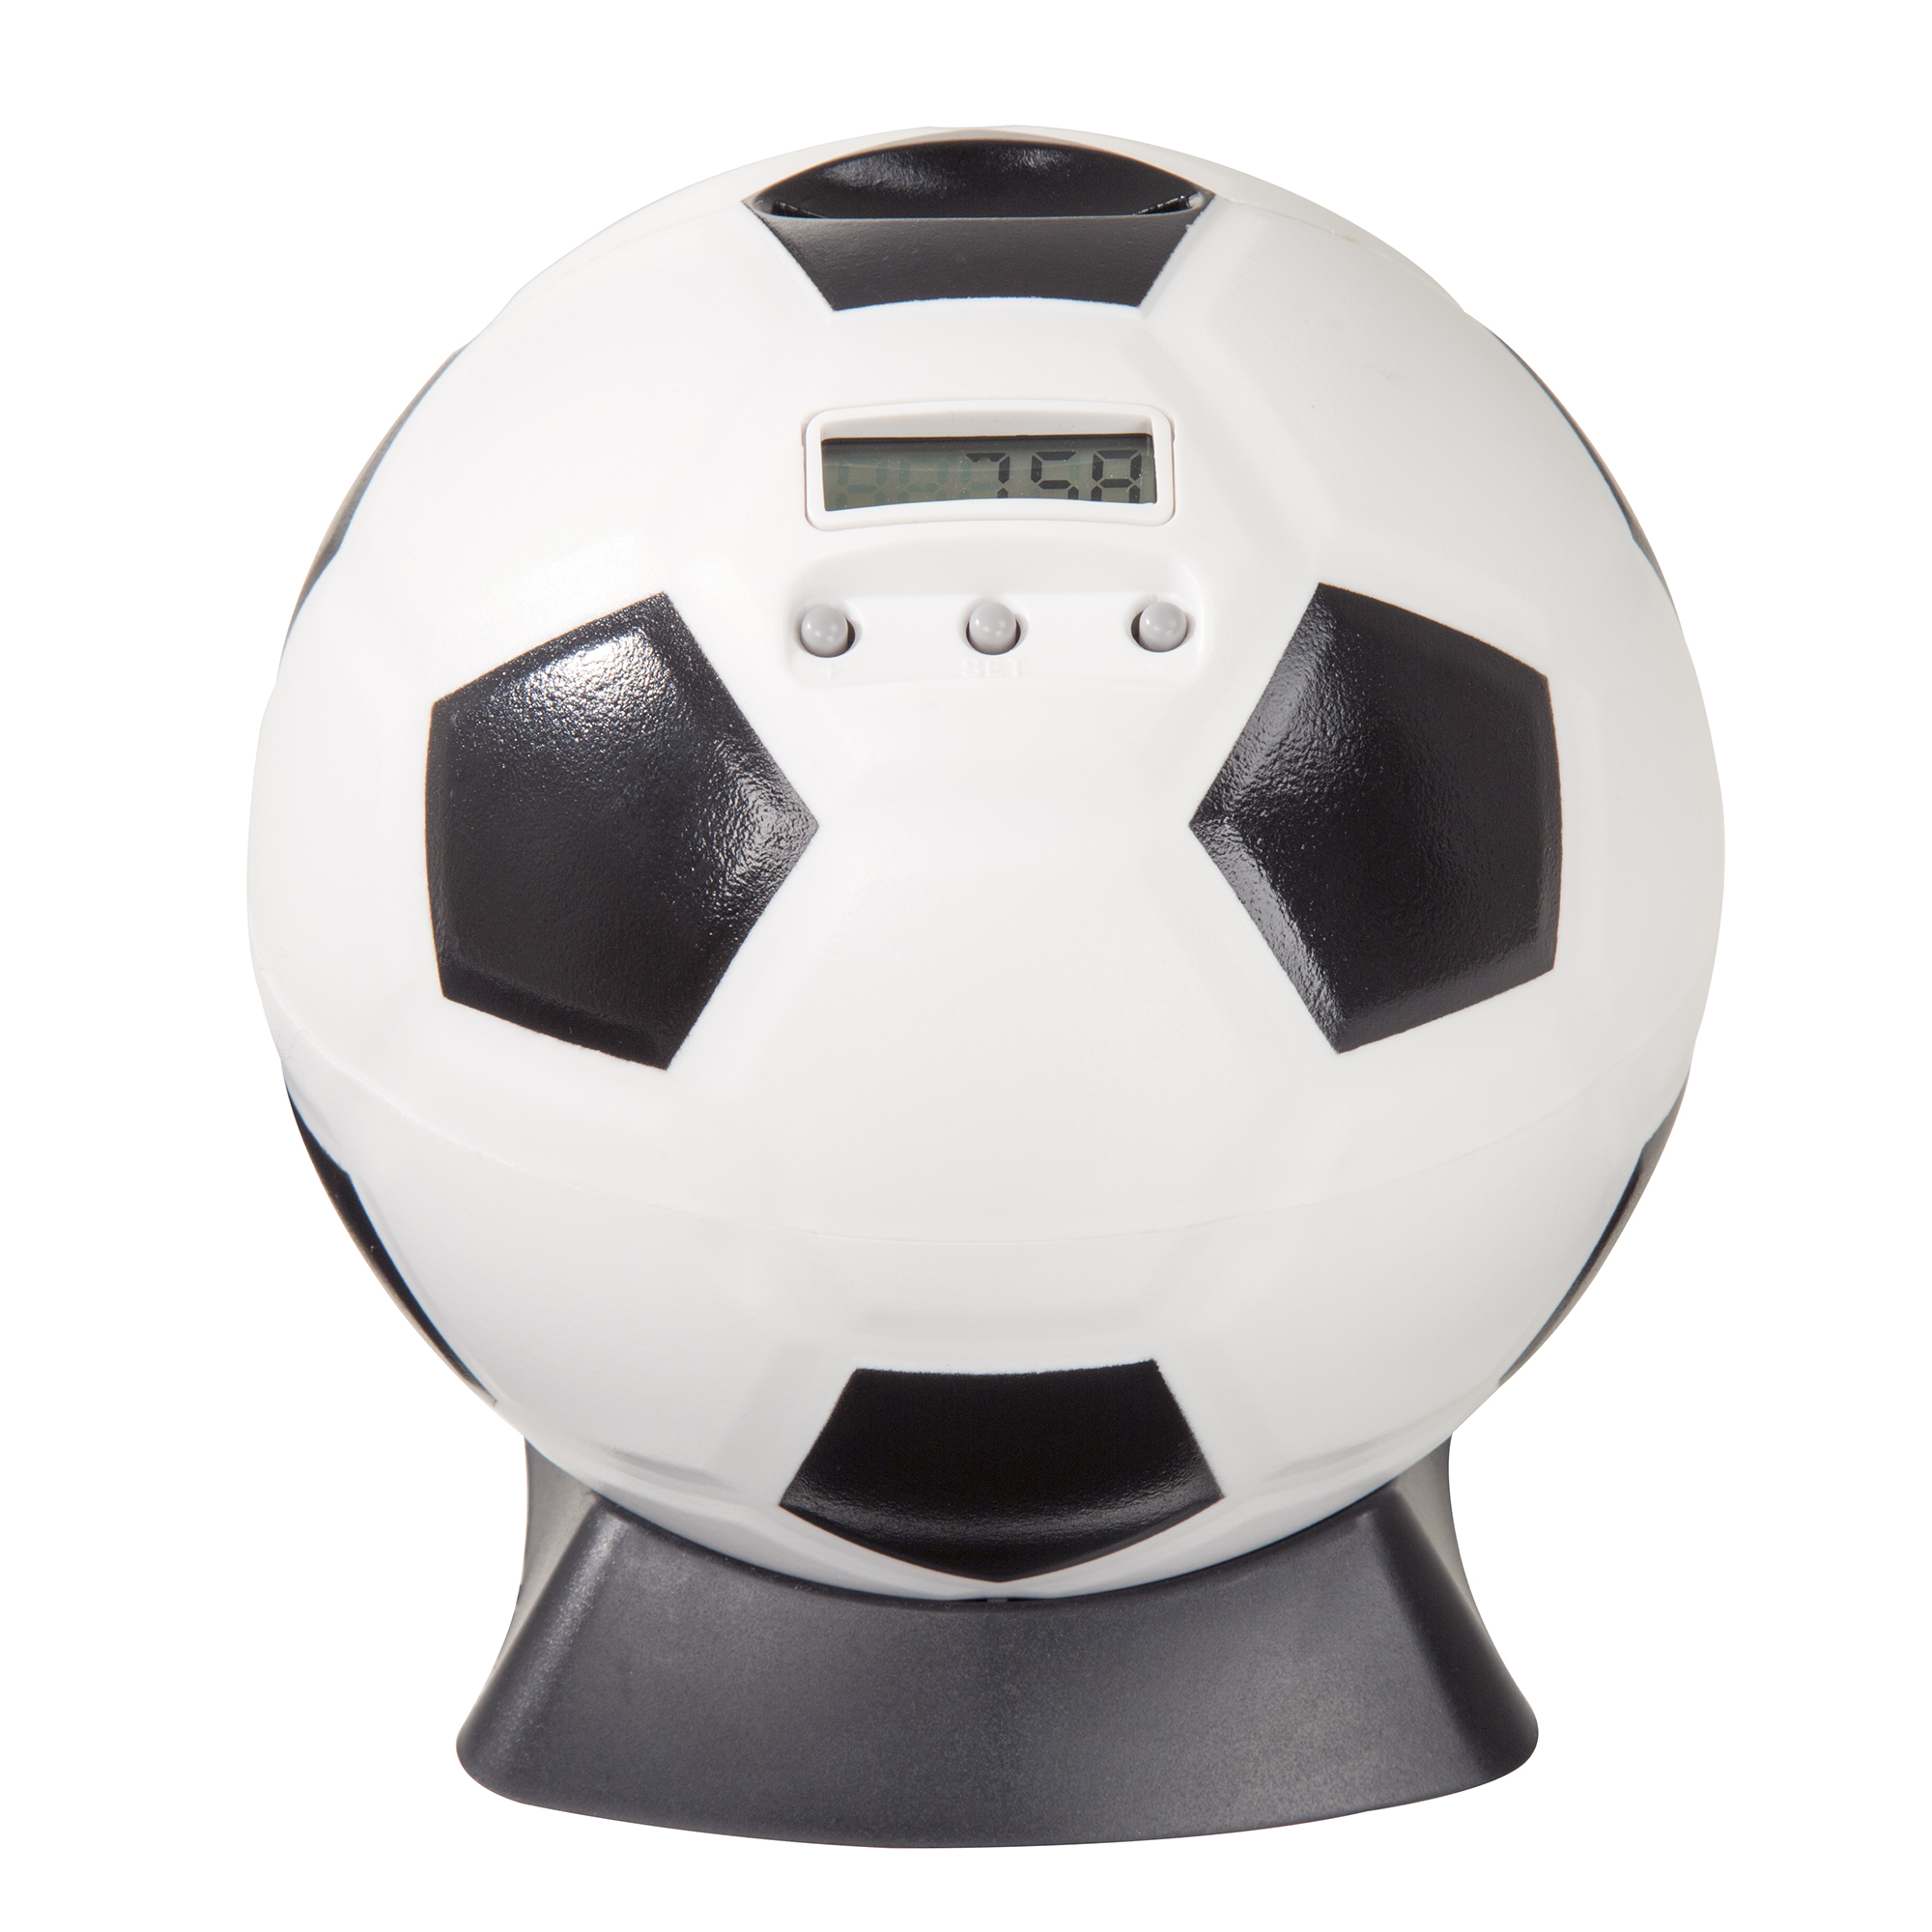 Piggy Bank With Counter Hey Play Soccer Ball Digital Coin Counting Bank Tanga